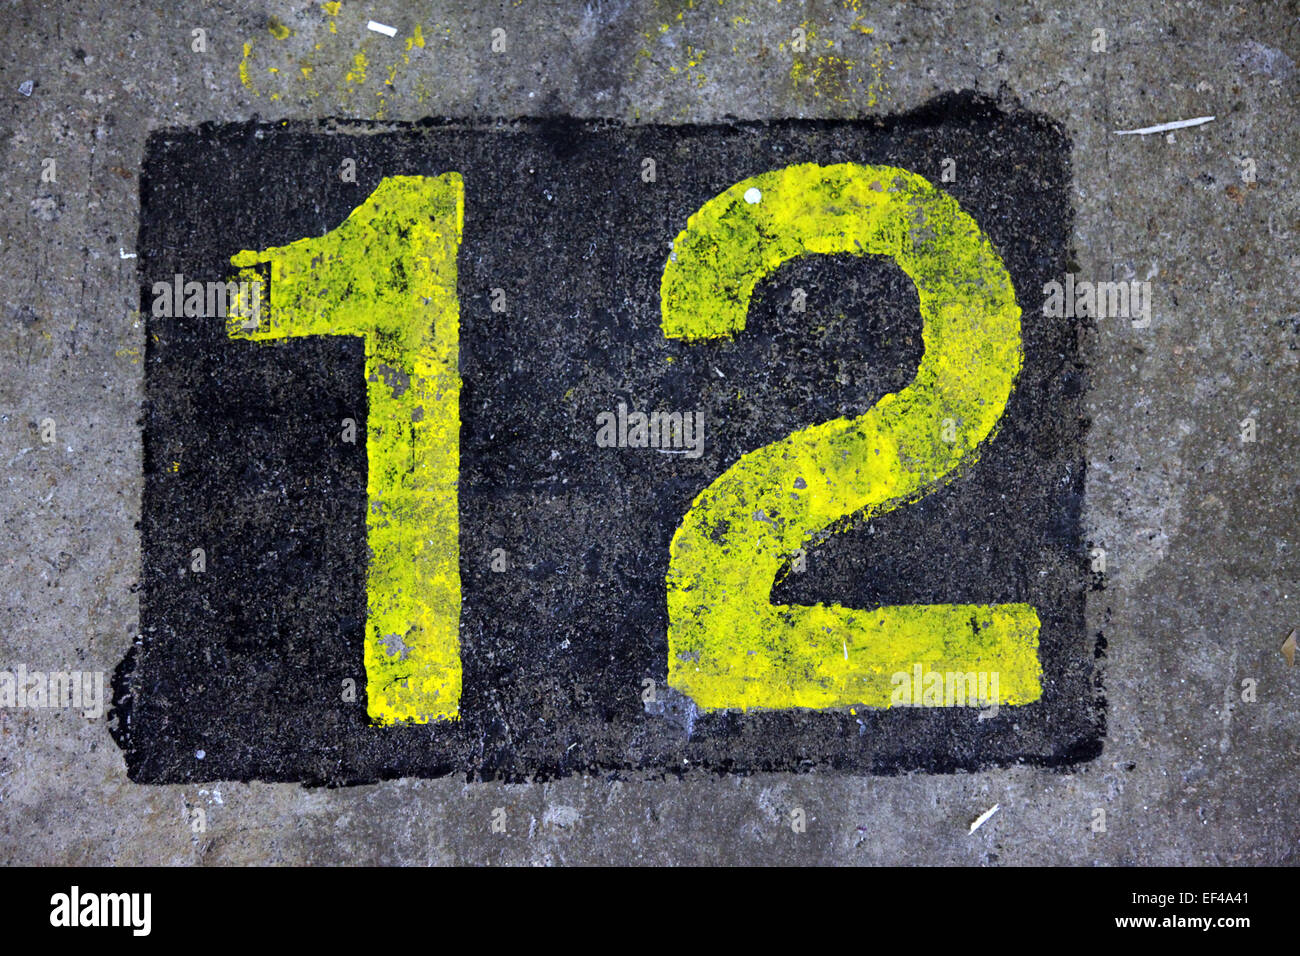 Top view of the number 12 painted in a stencil style in yellow color ...